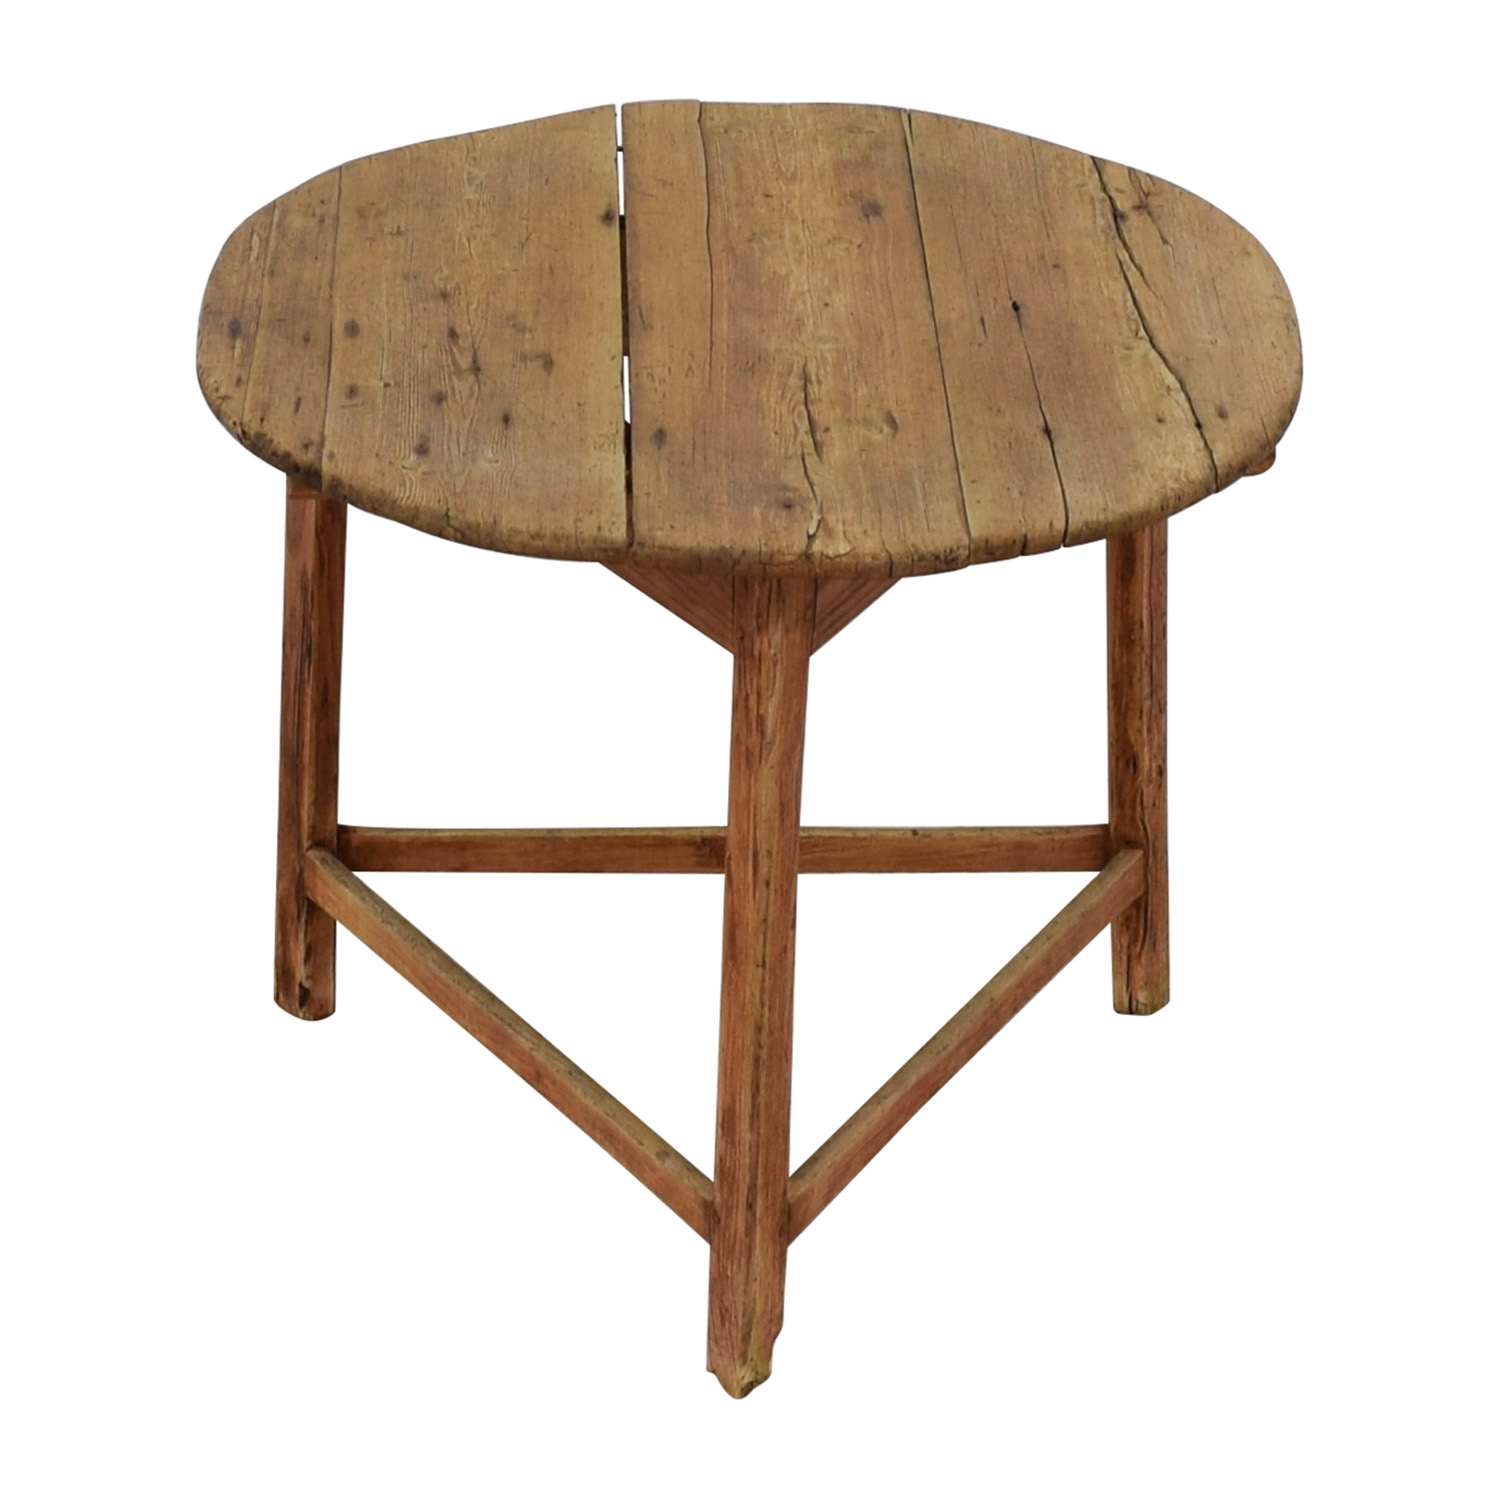 Reclaimed Wood Antique Table price